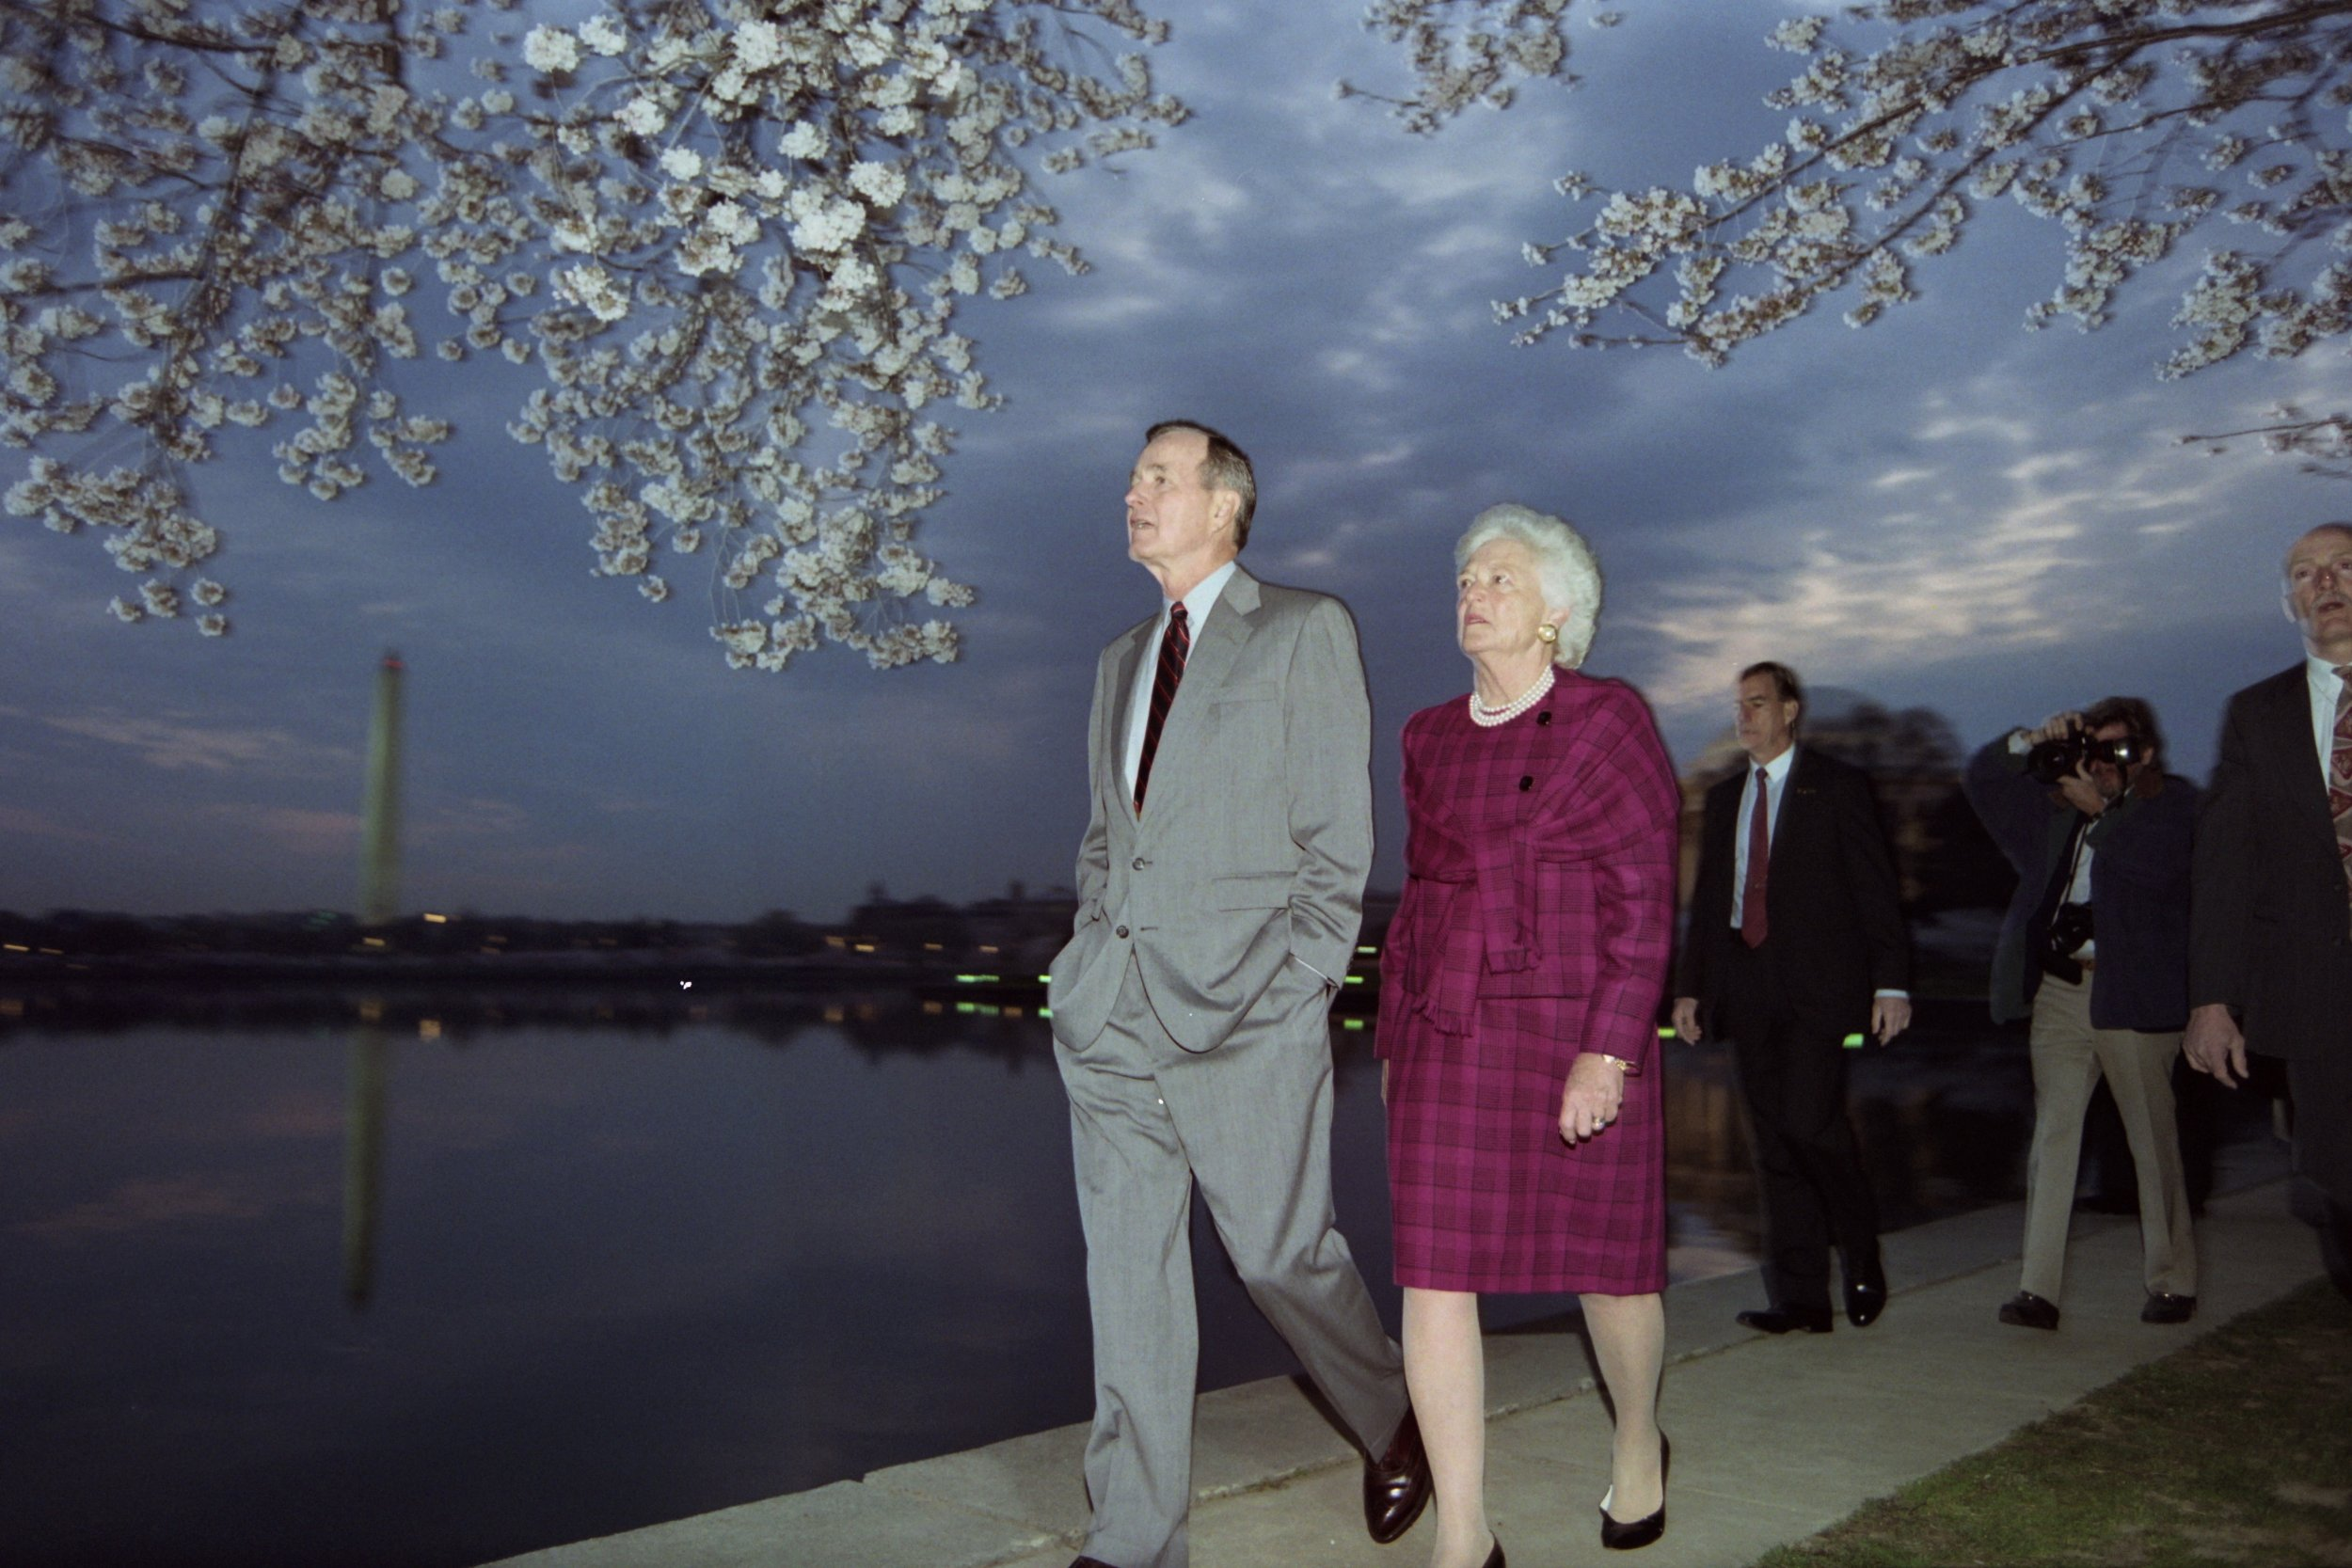 George H W Bush Quotes Words From Former President That Defined A